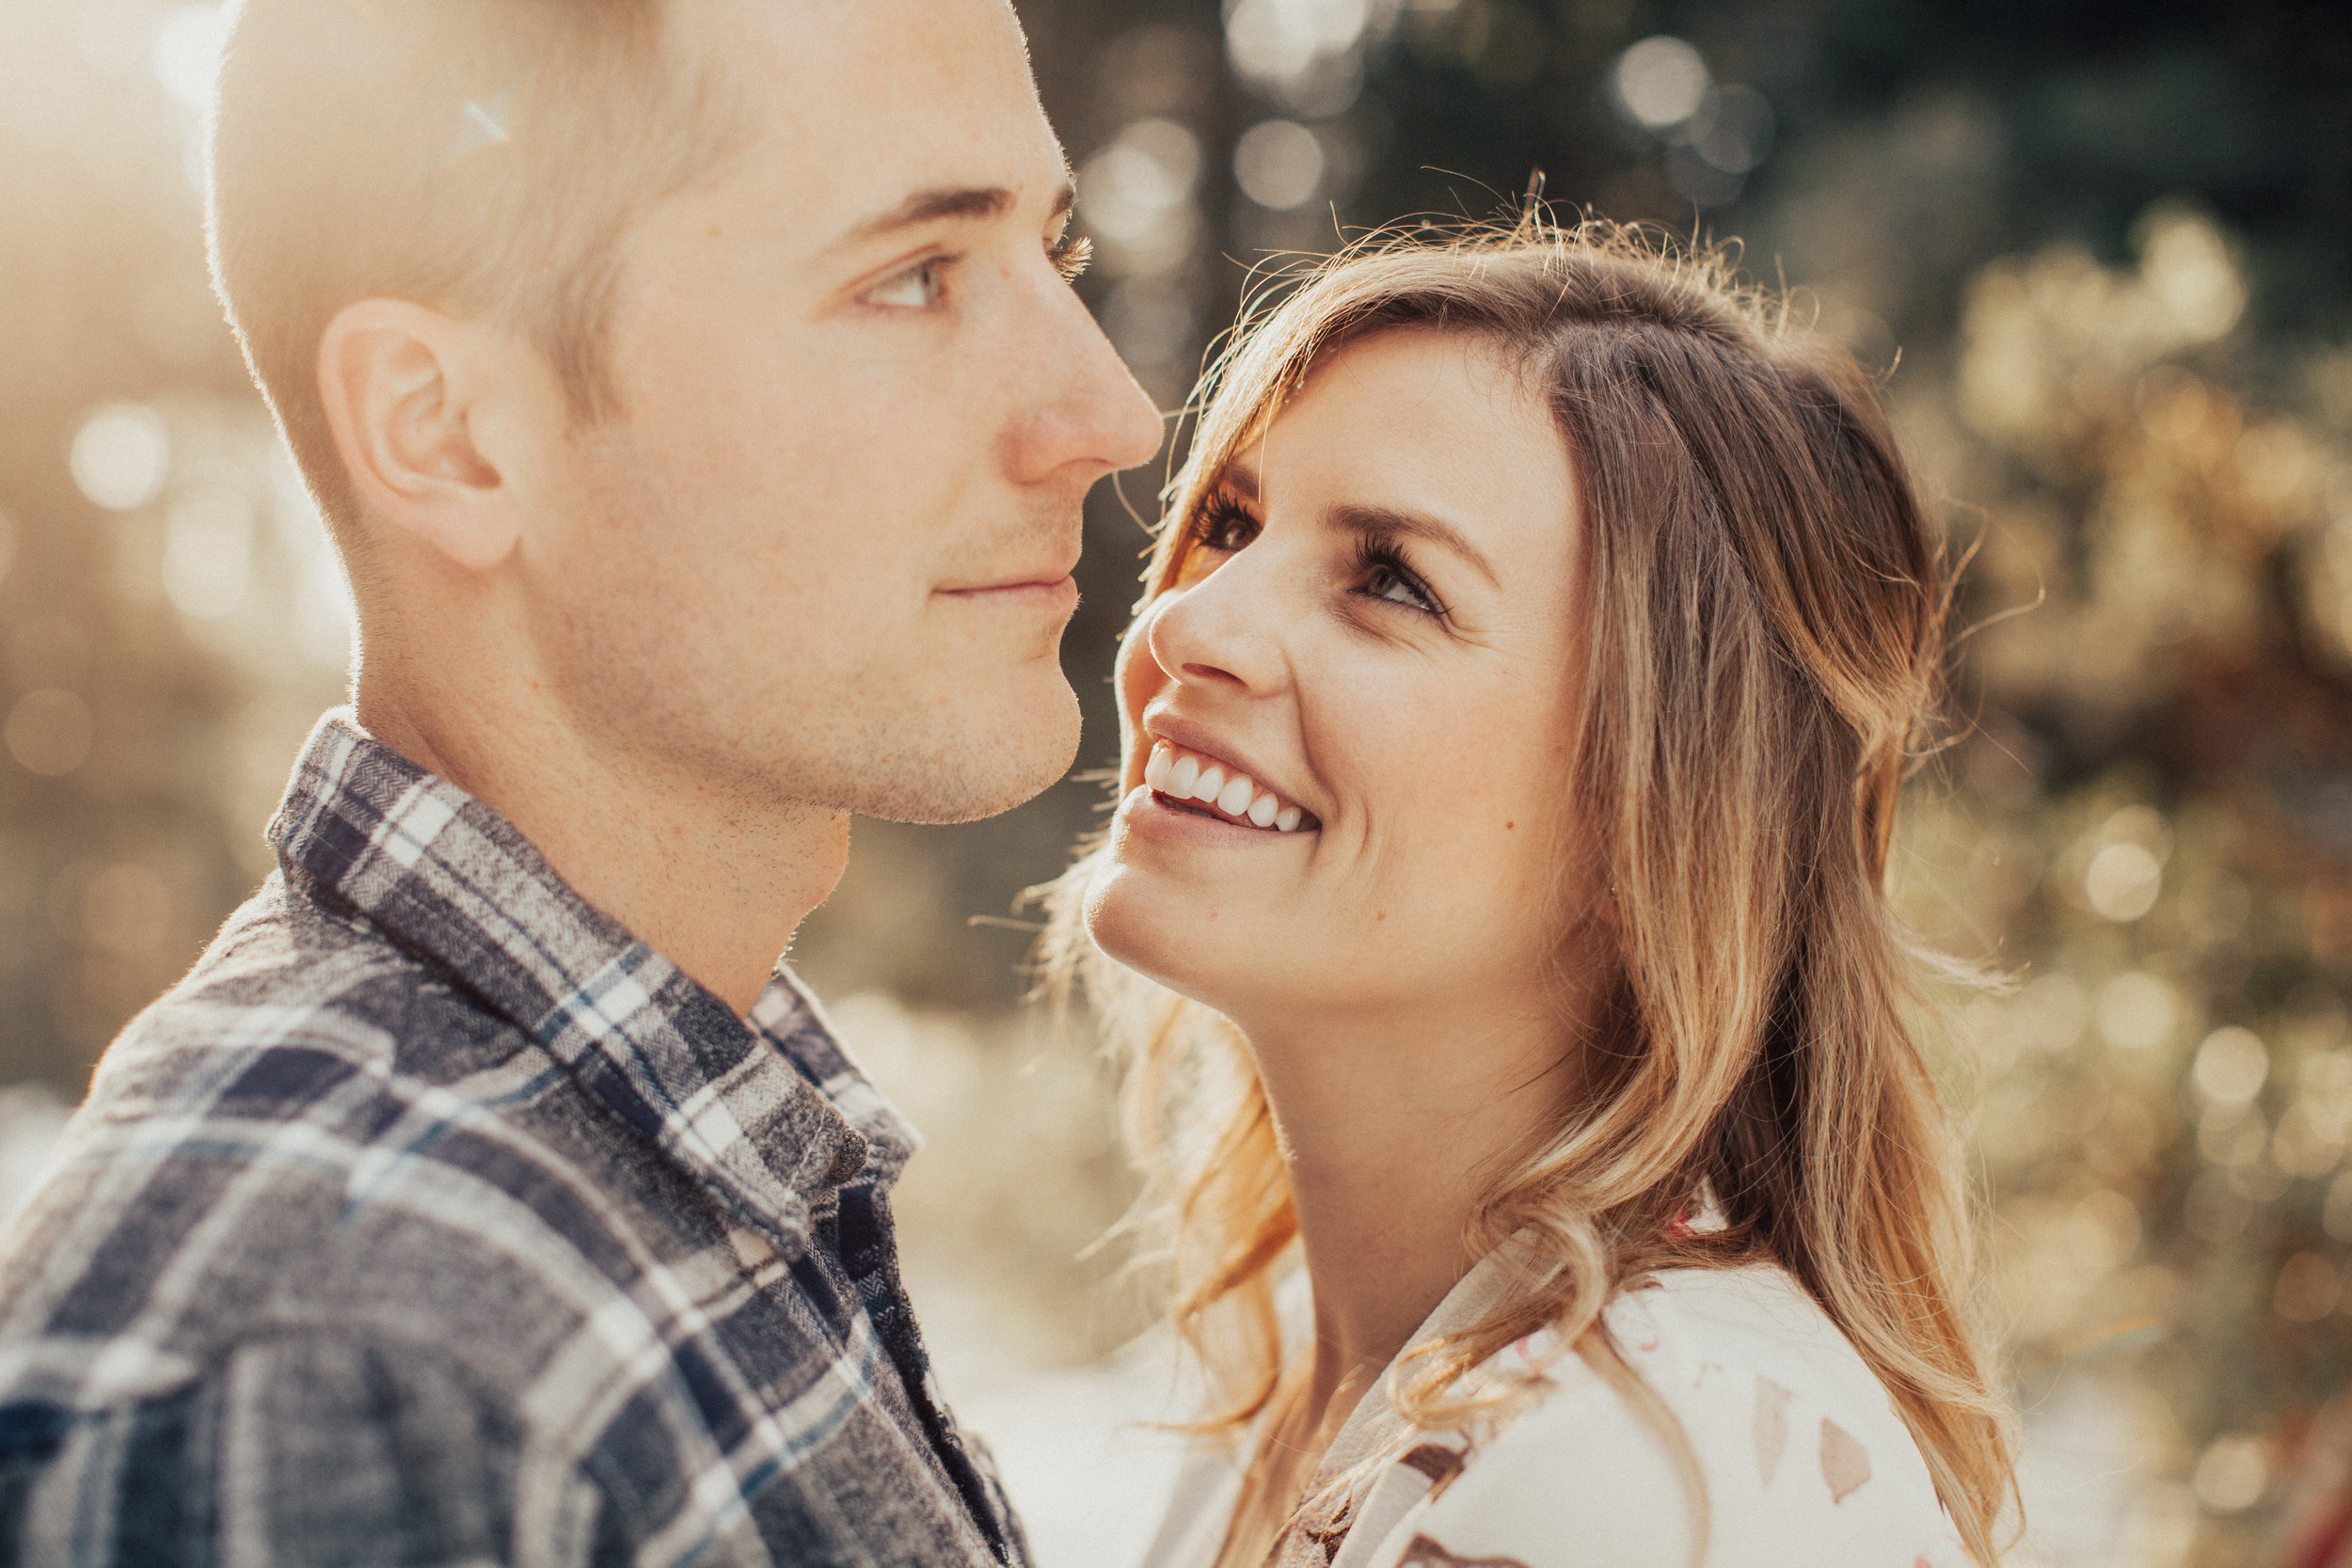 Girl smiling looking lovingly at her boyfriend.